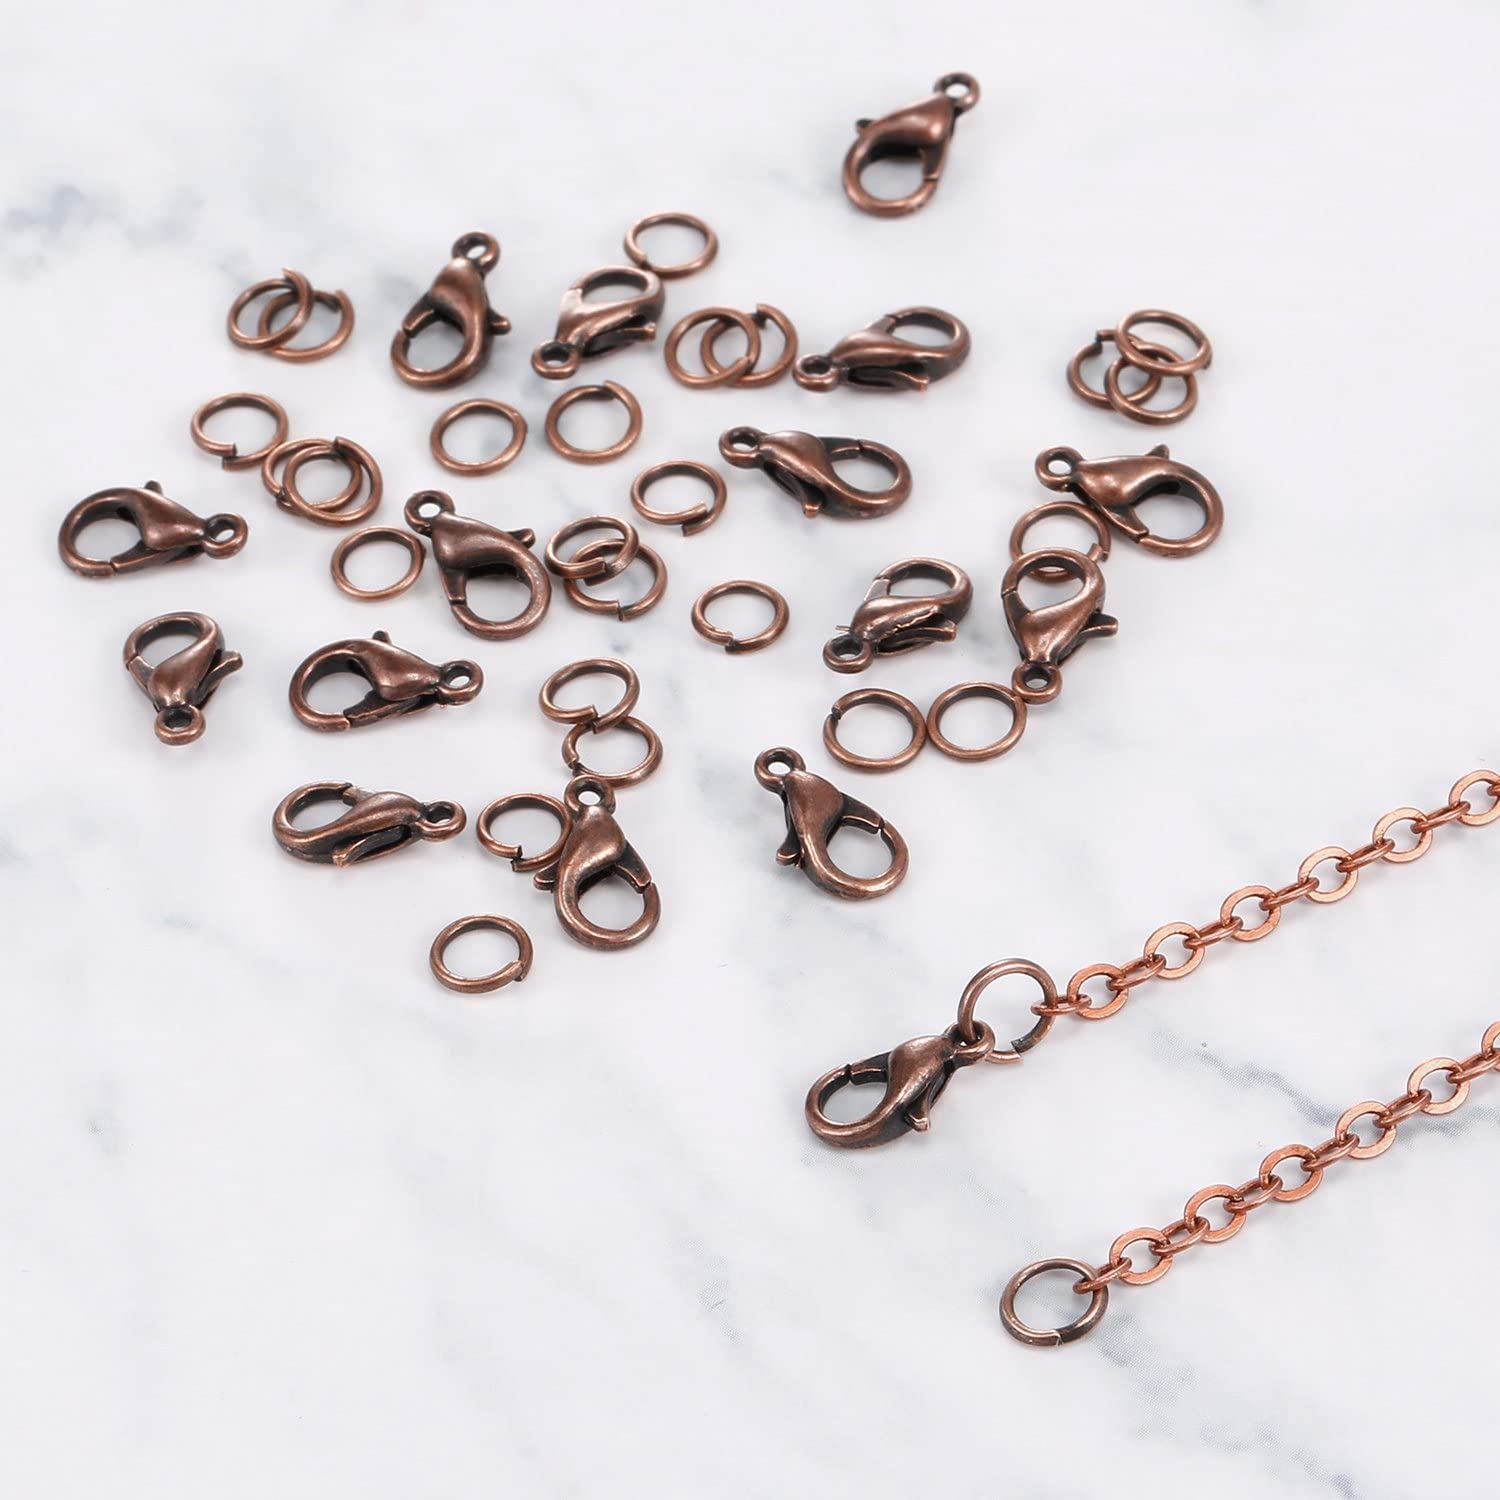 33 Feet Antique Red Copper Chain Link Necklace with 30 Pieces Jump Rings and...